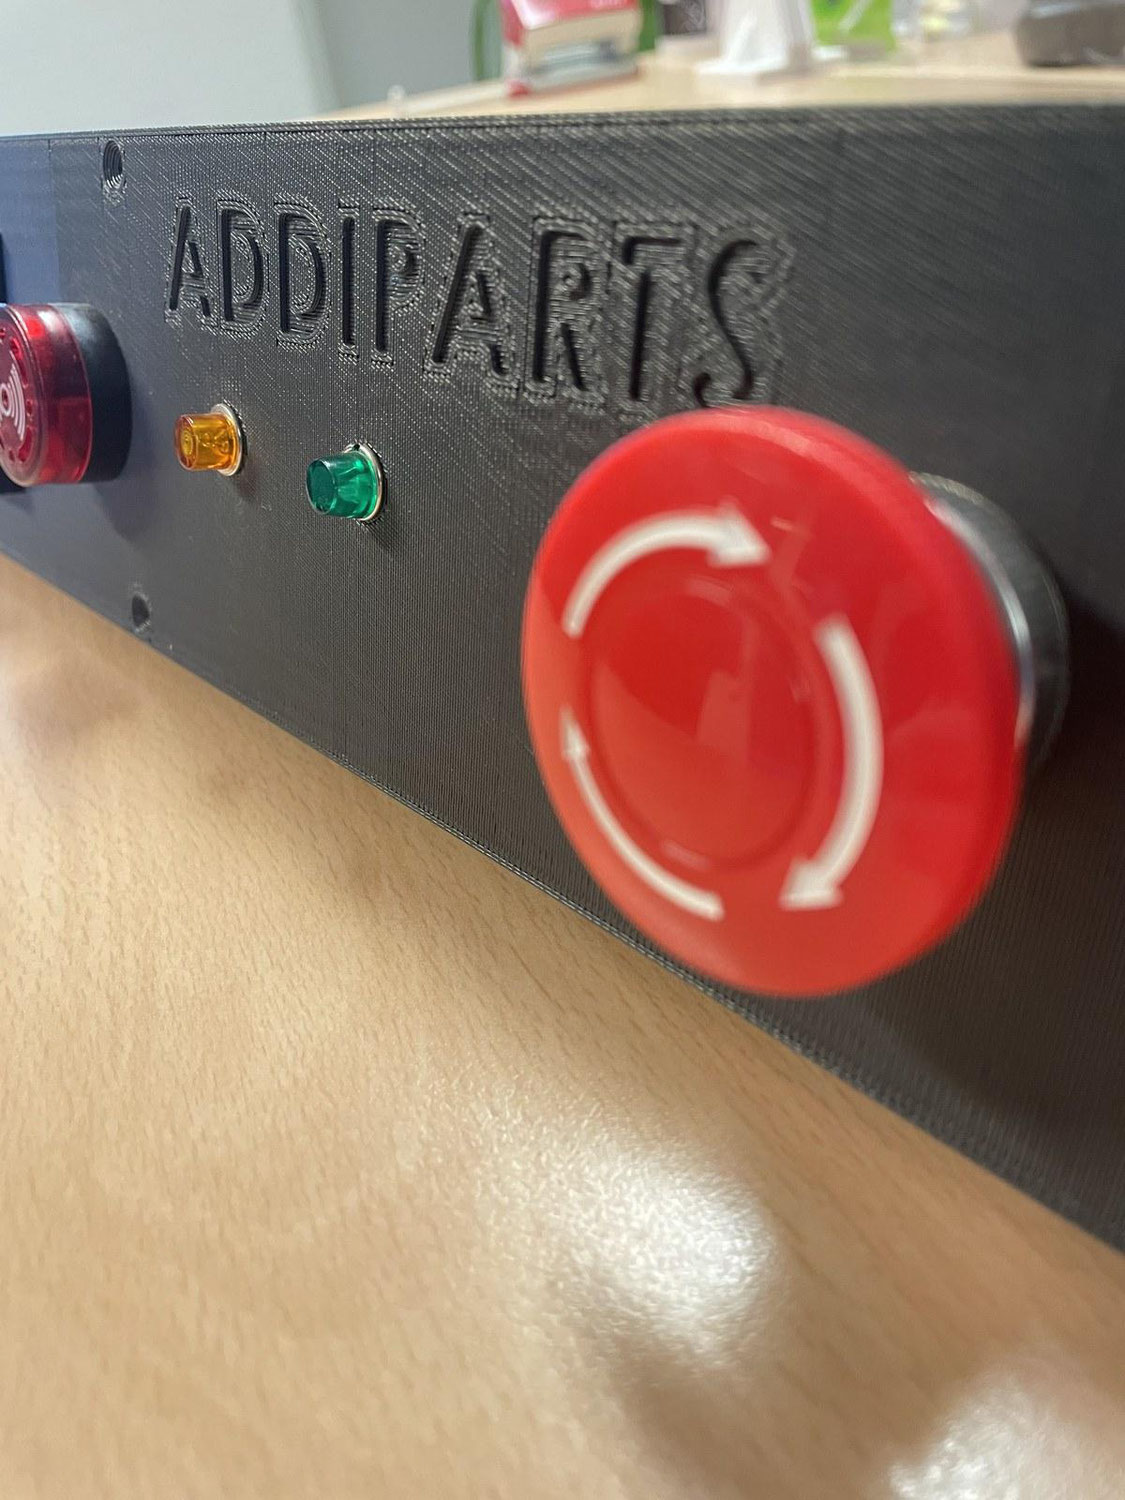 3D CAD & 3D printing with ADDIPARTS